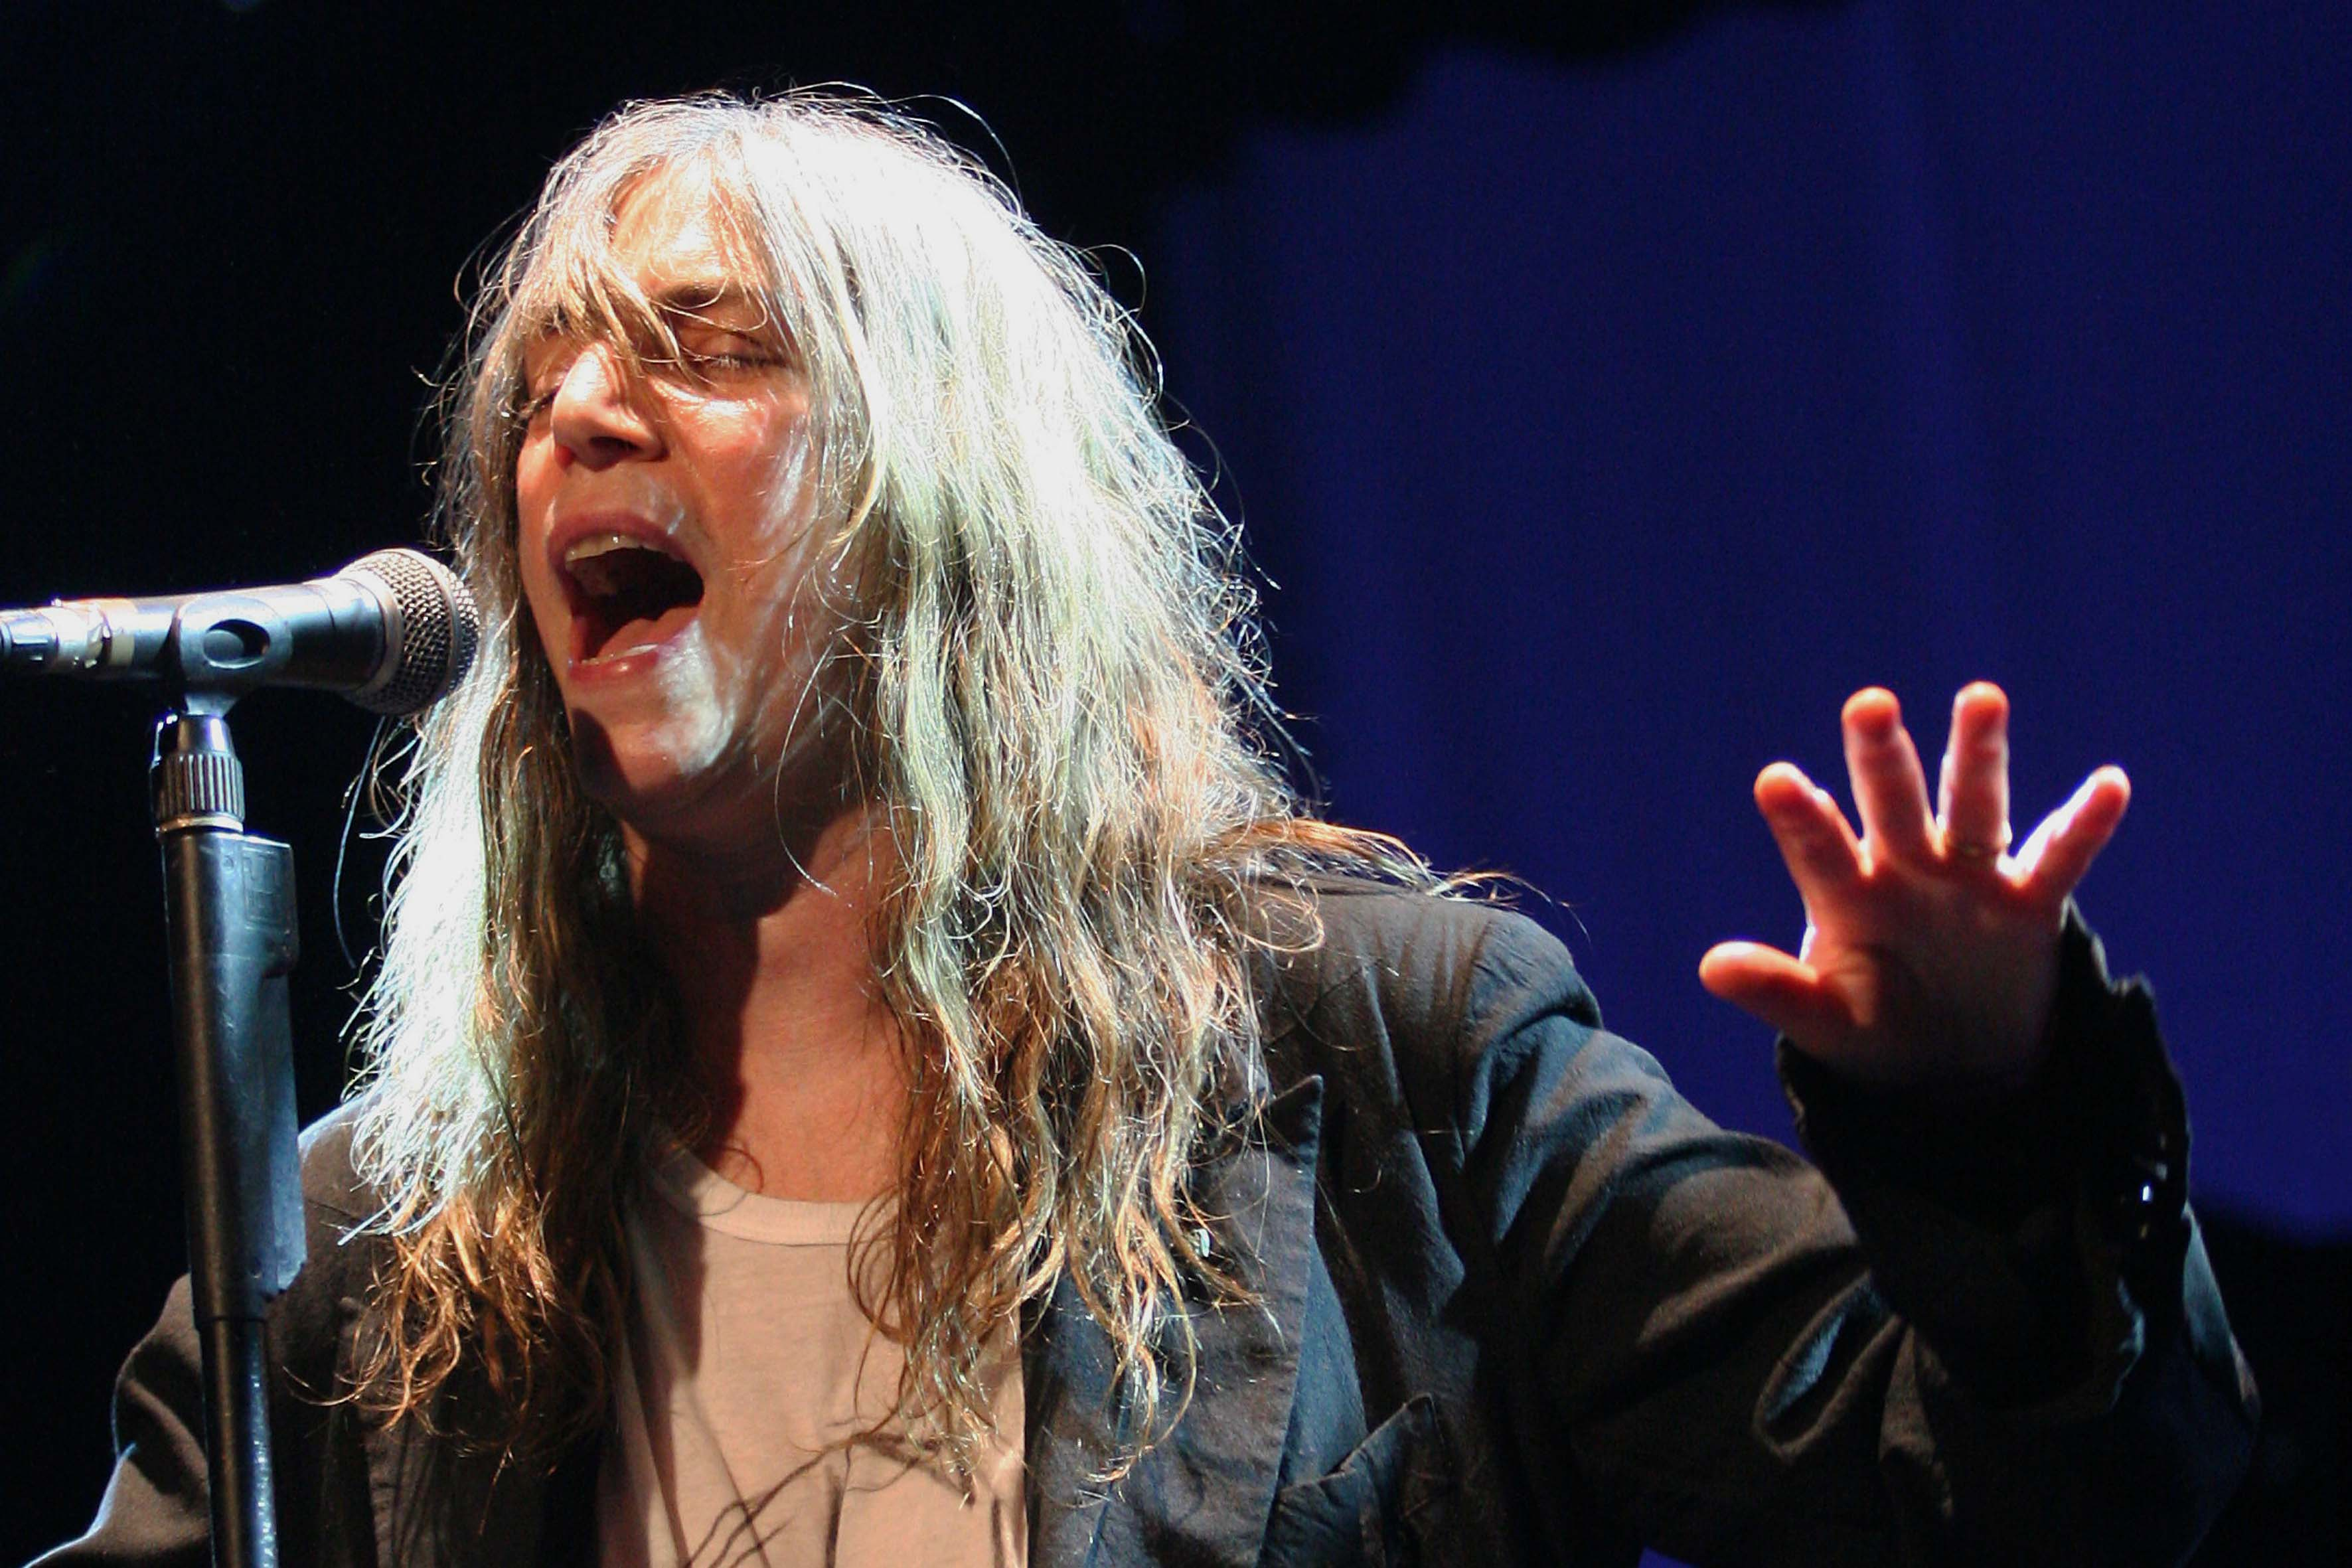 2007_marvaux_patti smith.jpg